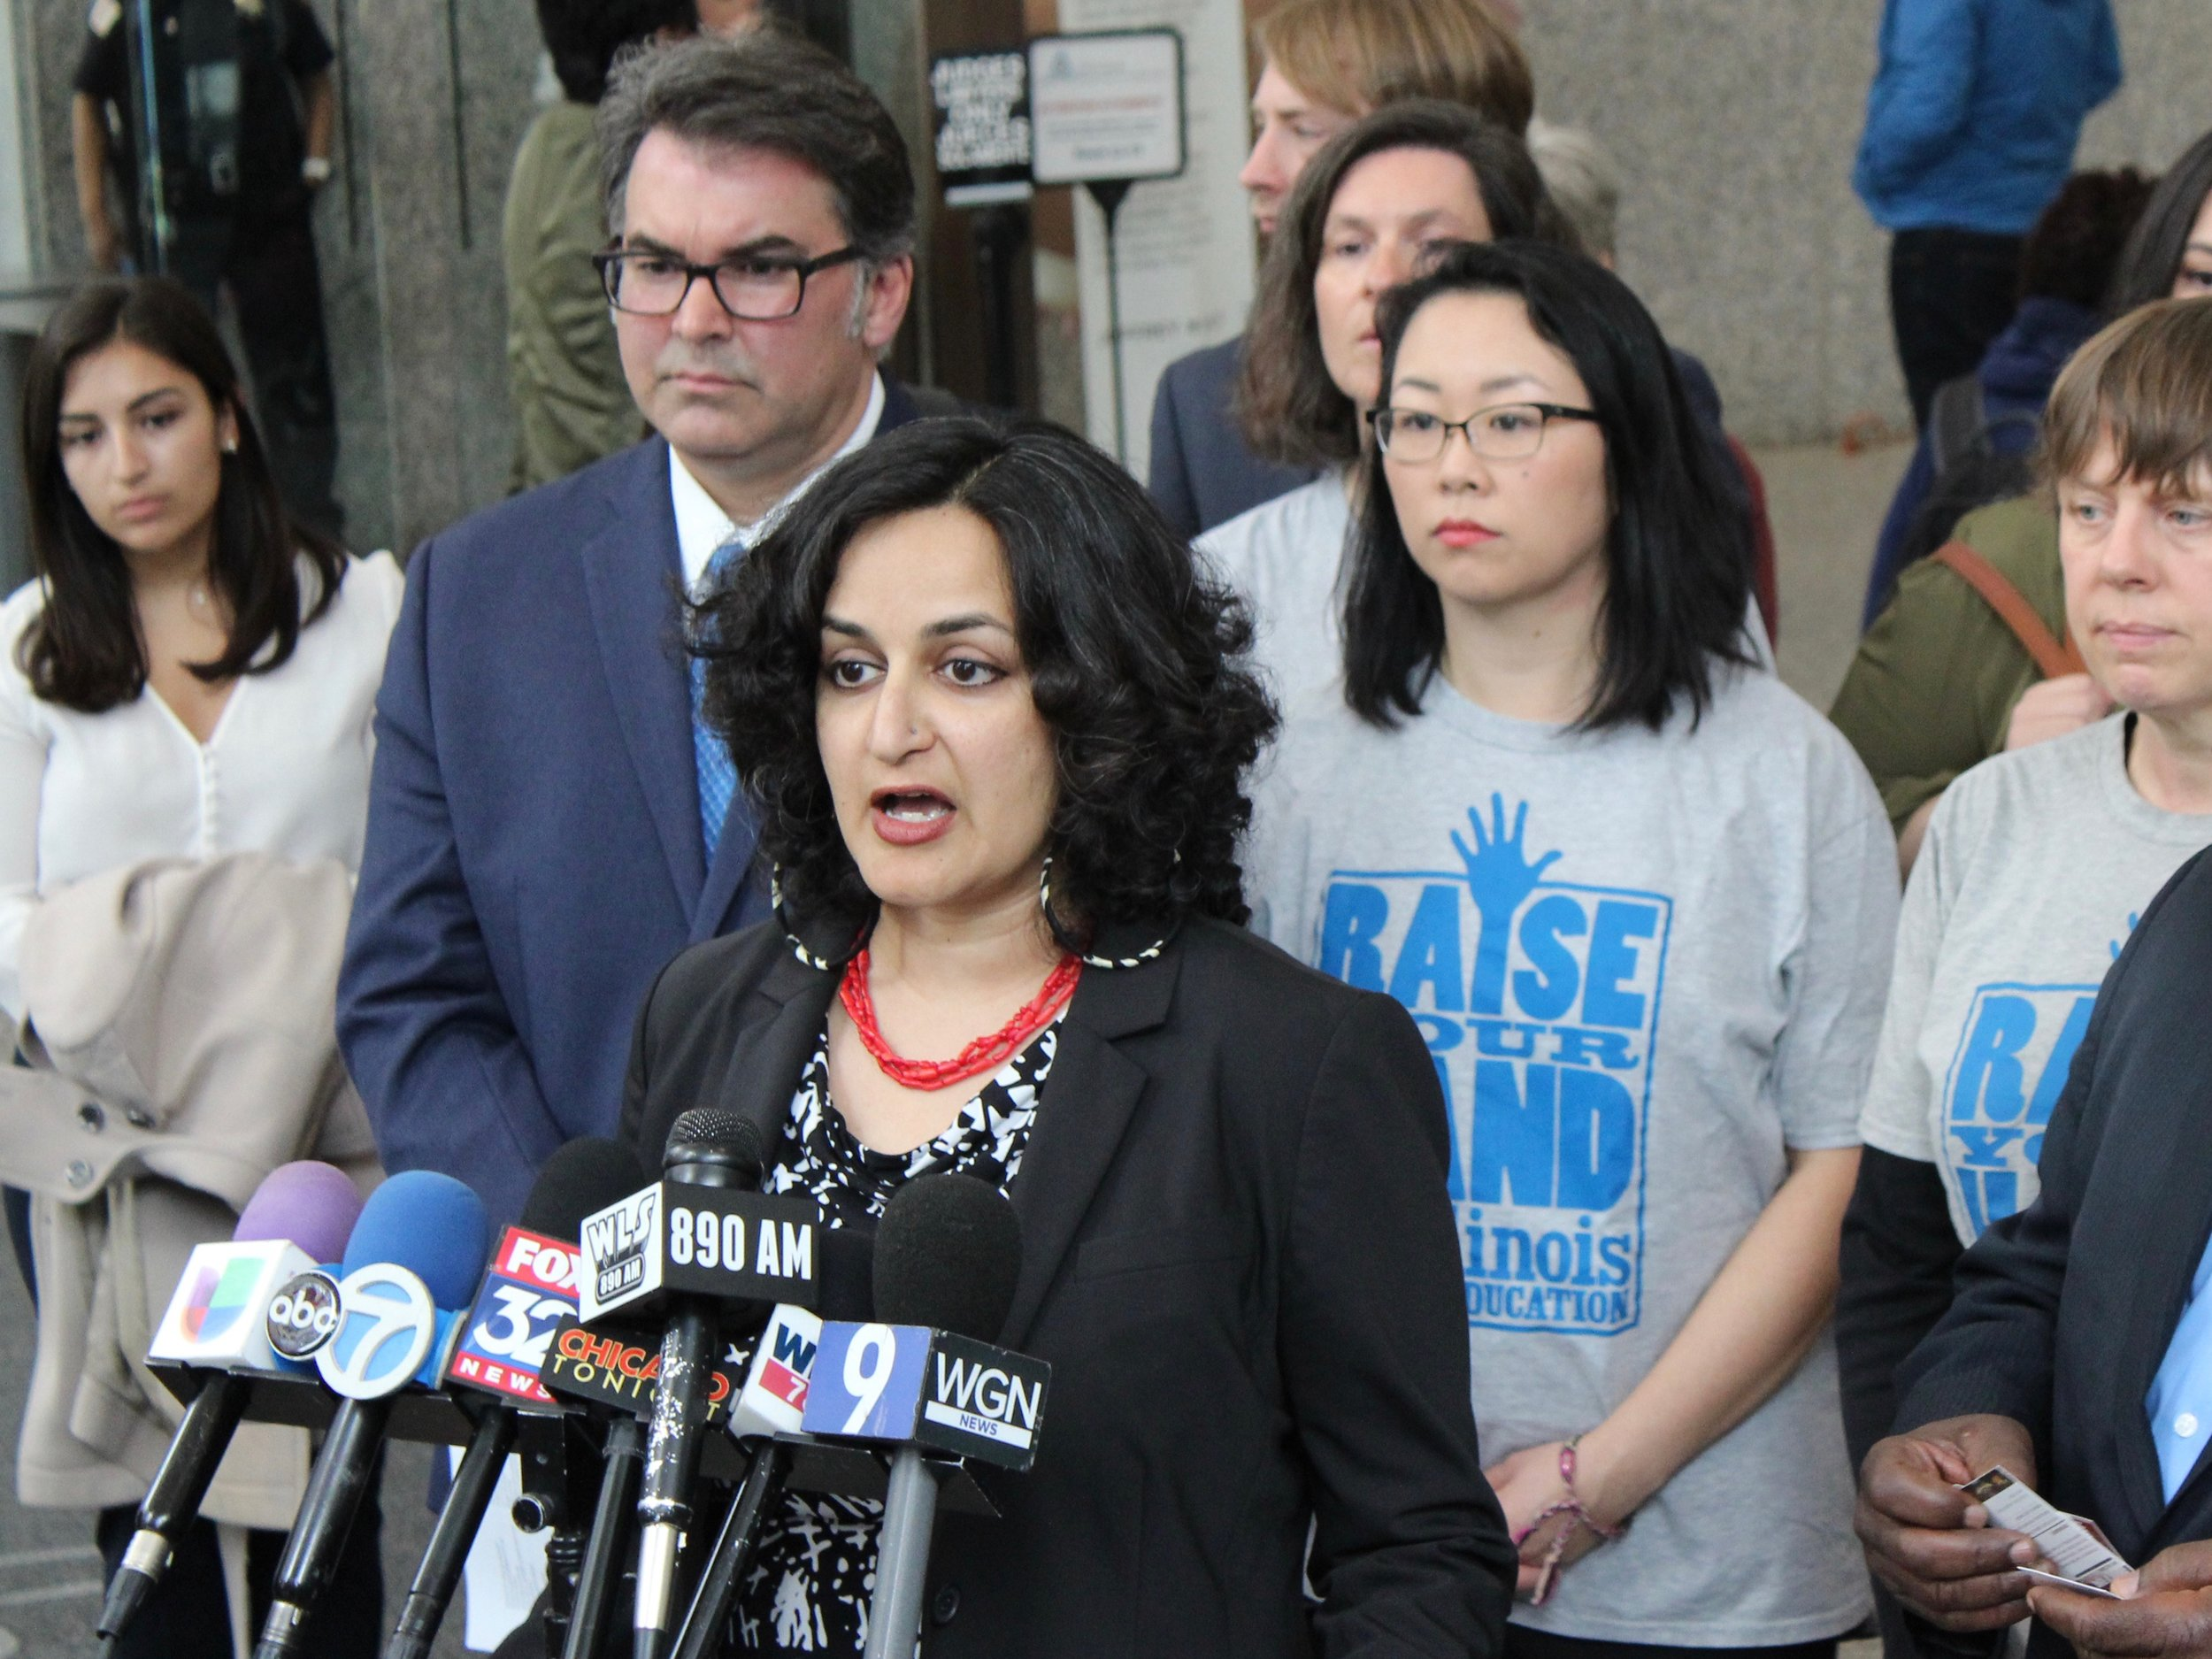 Amisha Patel, executive director of the Grassroots Collaborative, discusses the suit filed Wednesday against Chicago's TIF program at the Daley Center. (One Illinois/Ted Cox)